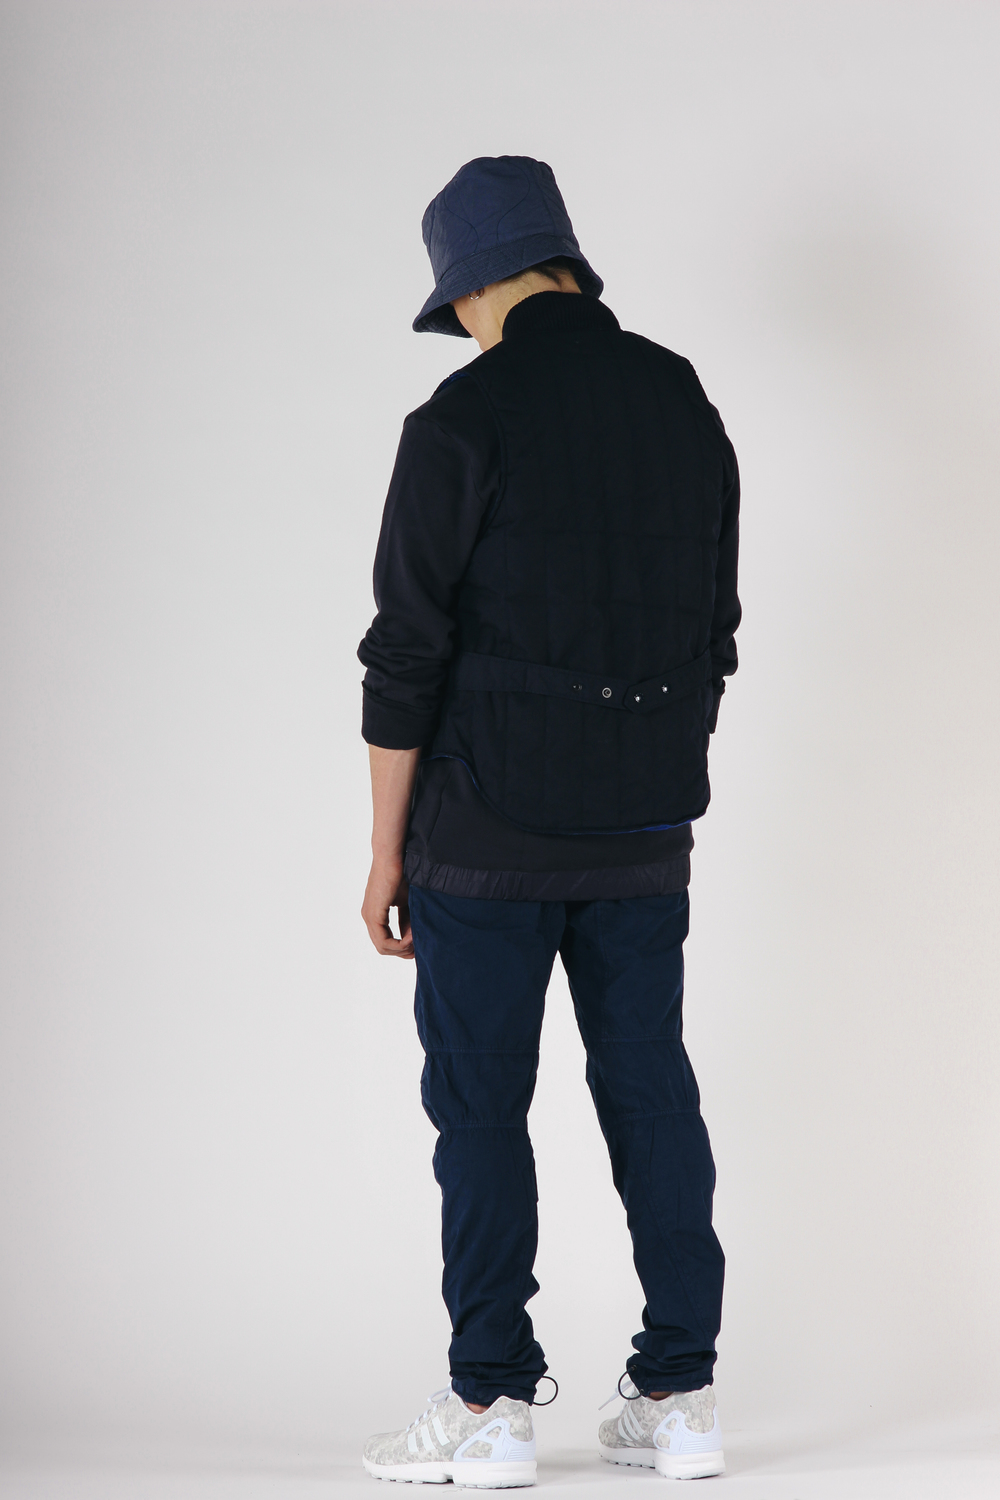 Chapeau: Engineered Garments Quilted Bucket Hat Gilet: Engineered Garments Primaloft Fridge Vest Haut: Still Good Hybrid Crewneck Pants: maharishi Twisted Knee Pant Chaussures: adidas Originals x White Mountaineering ZX Flux